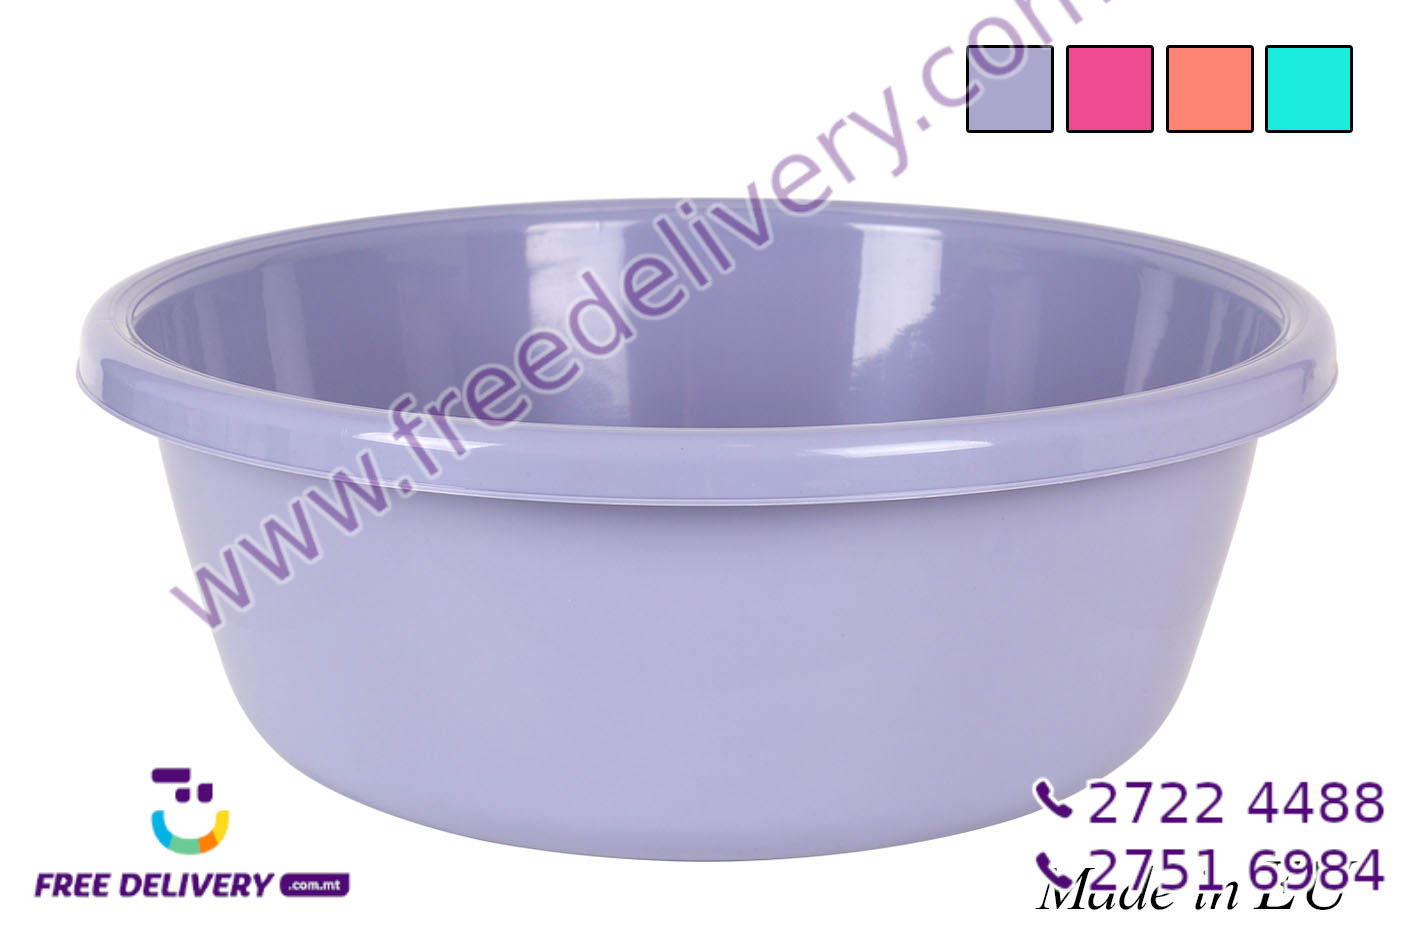 ROUND WASHBOWL 15L COLORS IN893212